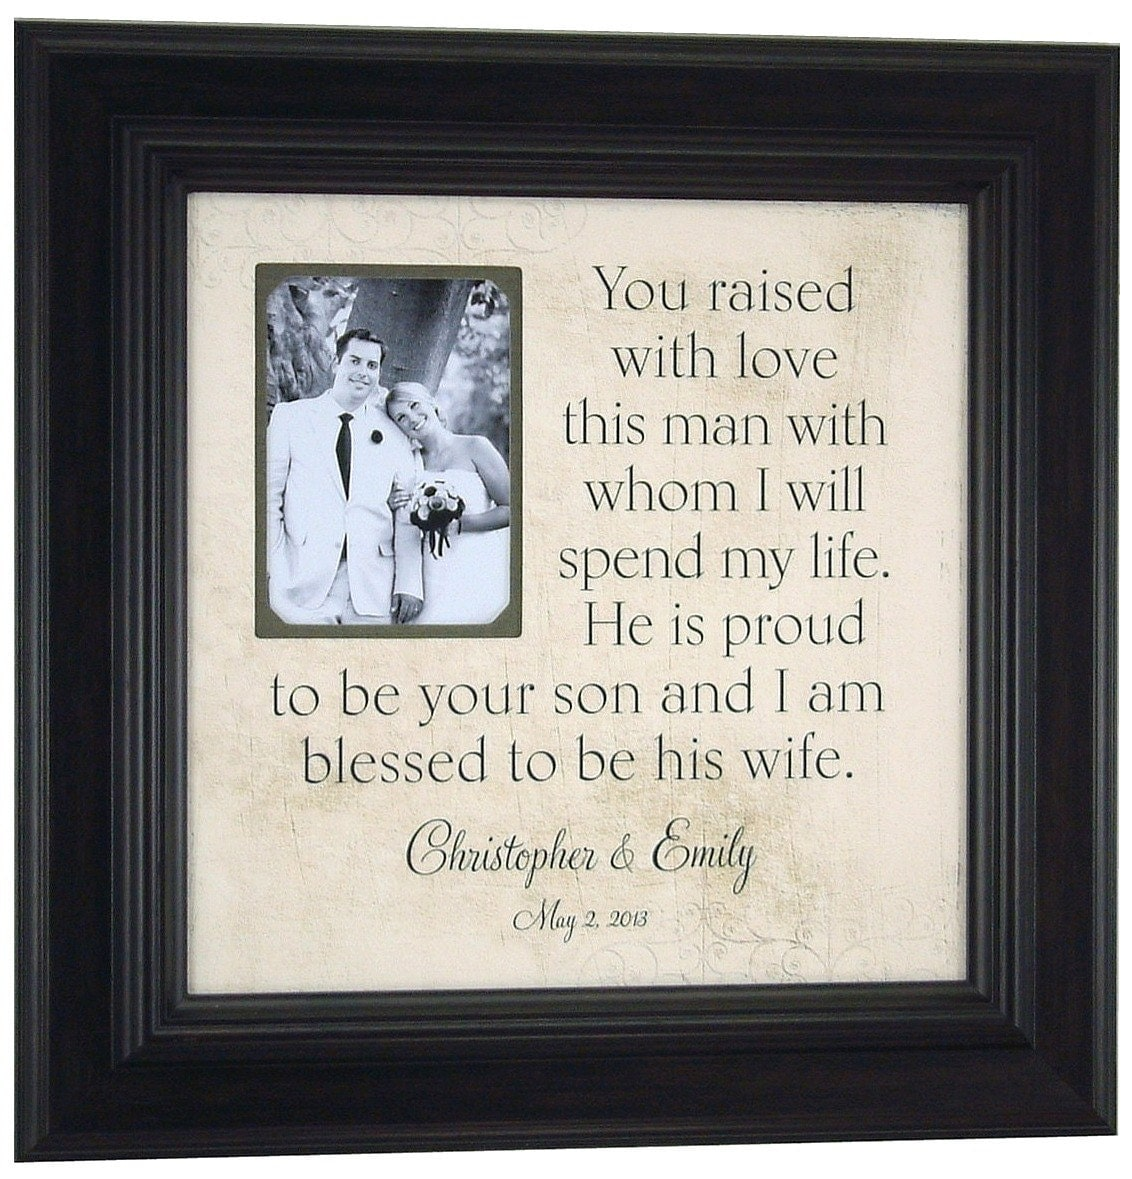 Personalized Wedding Picture Frames Parents : Wedding Picture Frame Personalized, Mother of the Groom Gift, Parents ...